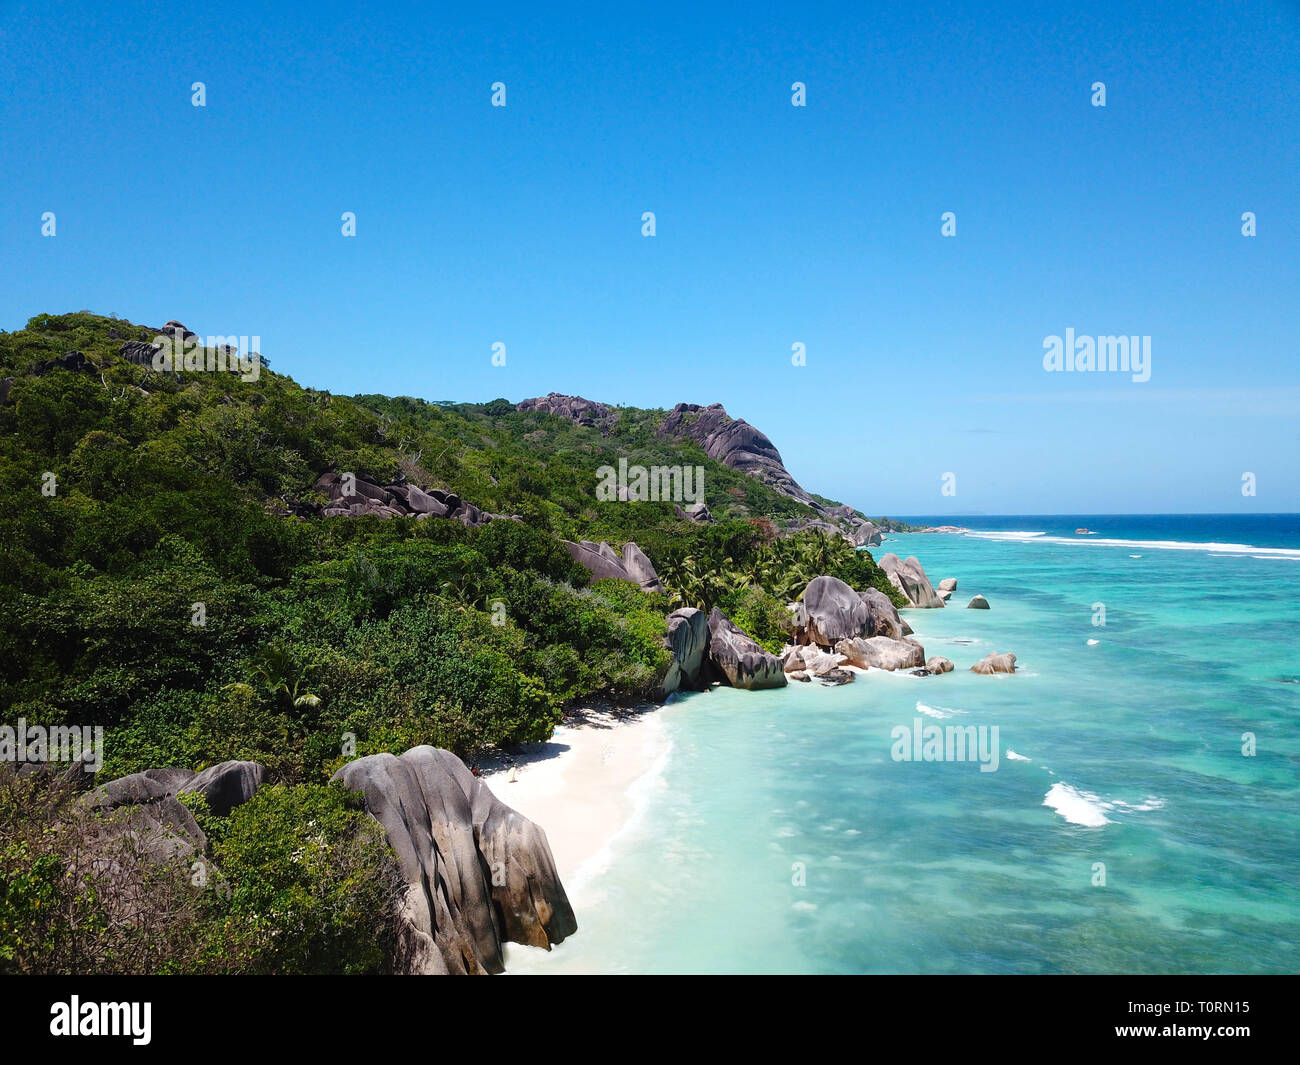 Aerial photo of Anse d'Argent at the Seychelles - Stock Image